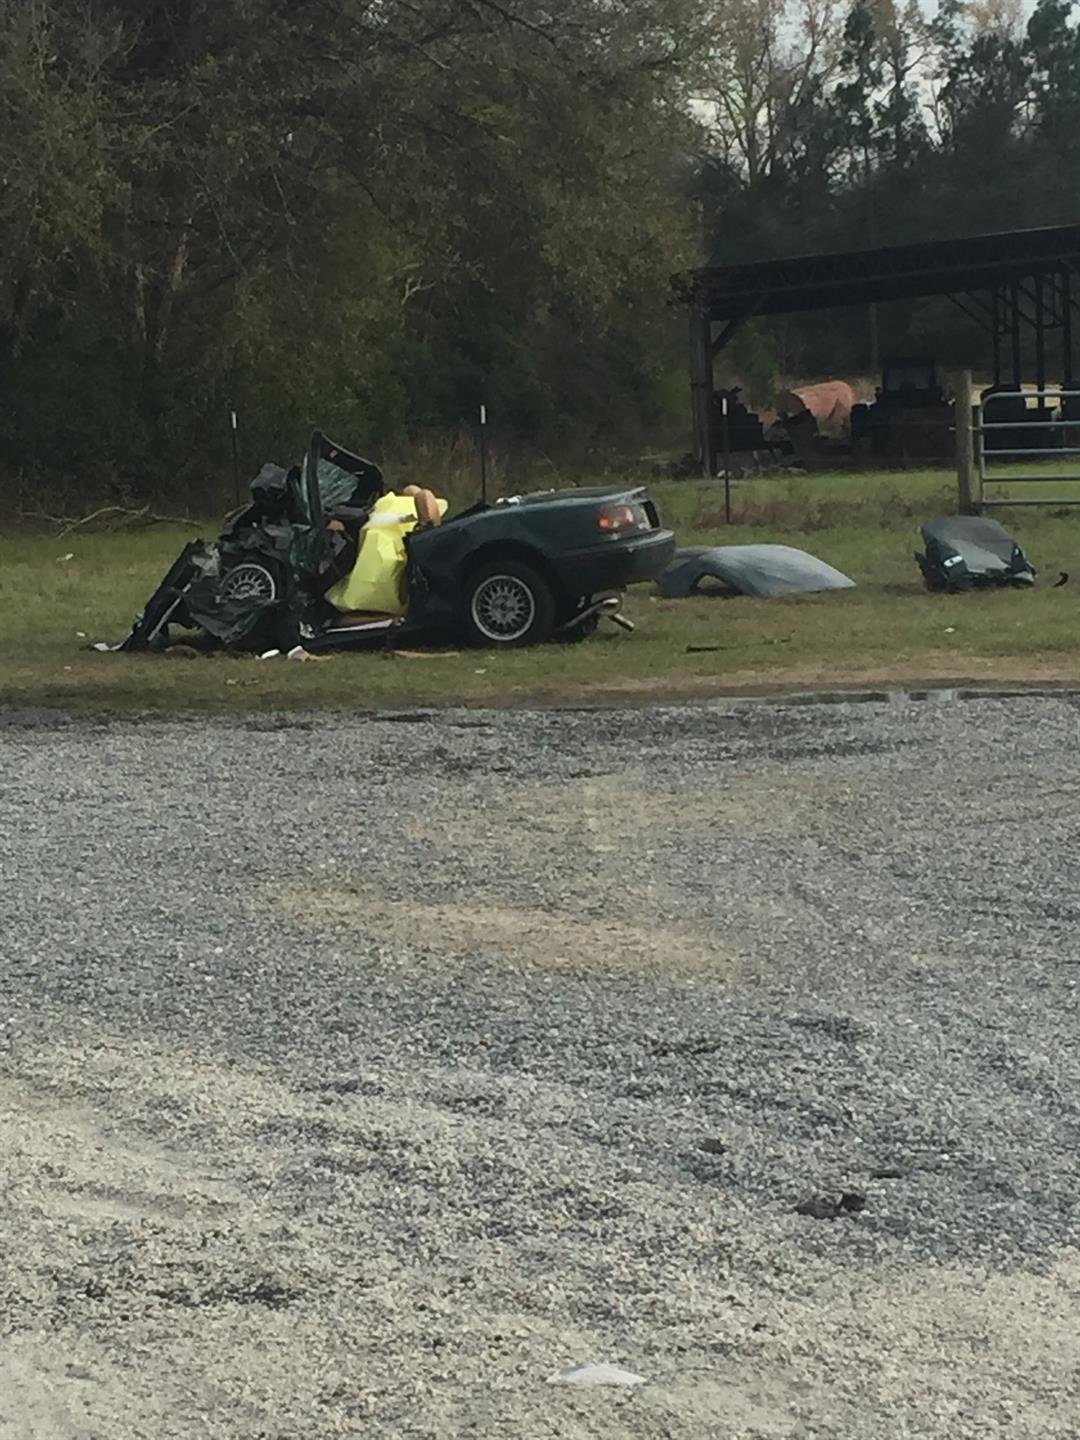 Miata driven by Franz Schultz in deadly crash on River Rd. 3/5/18 (WFXG)